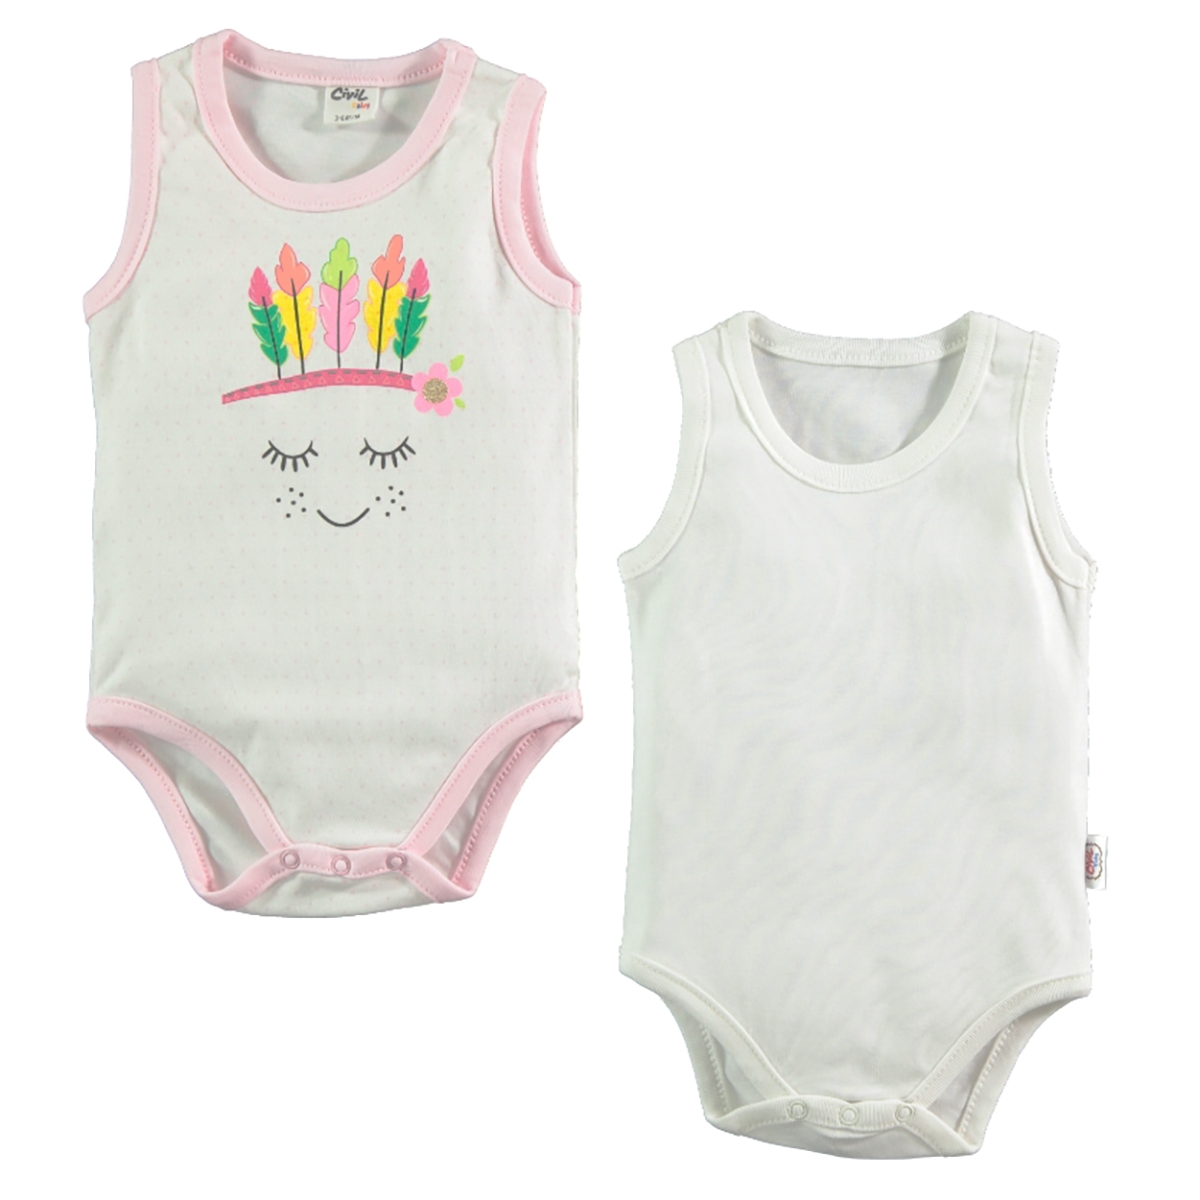 Civil Baby Baby 2-0-12 months Pink Bodysuit with snaps